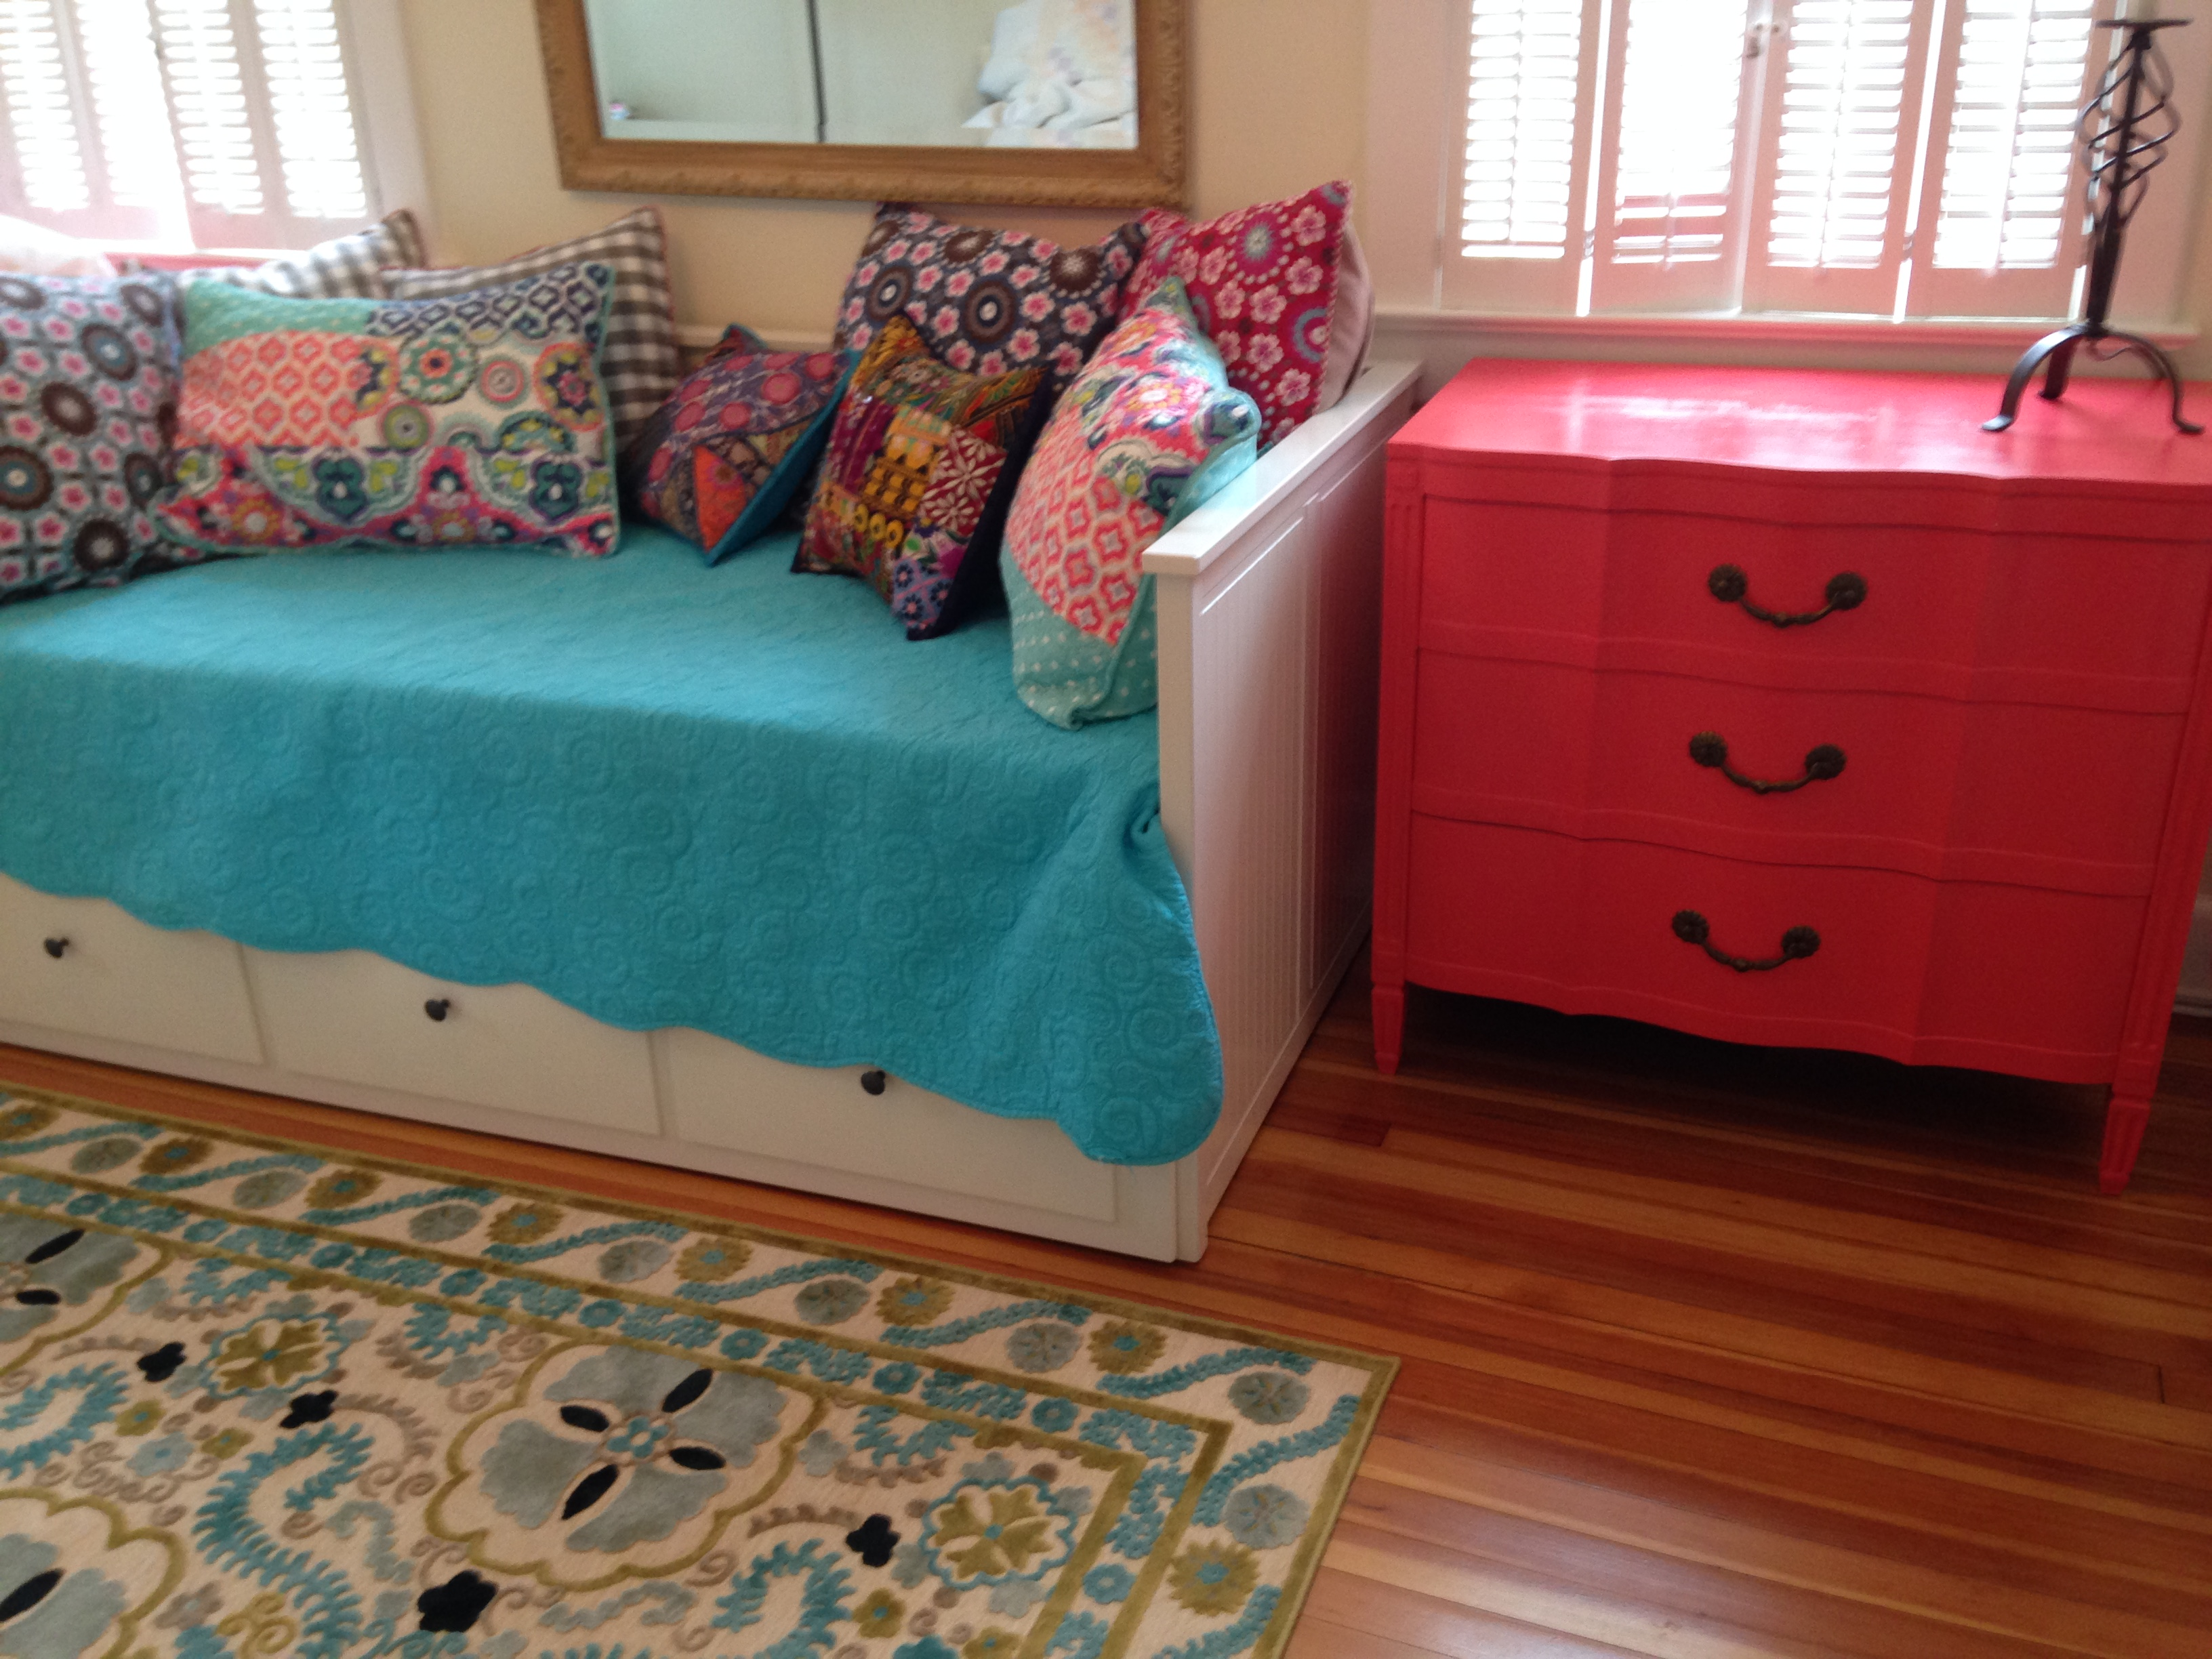 Item: Coral painted dresser